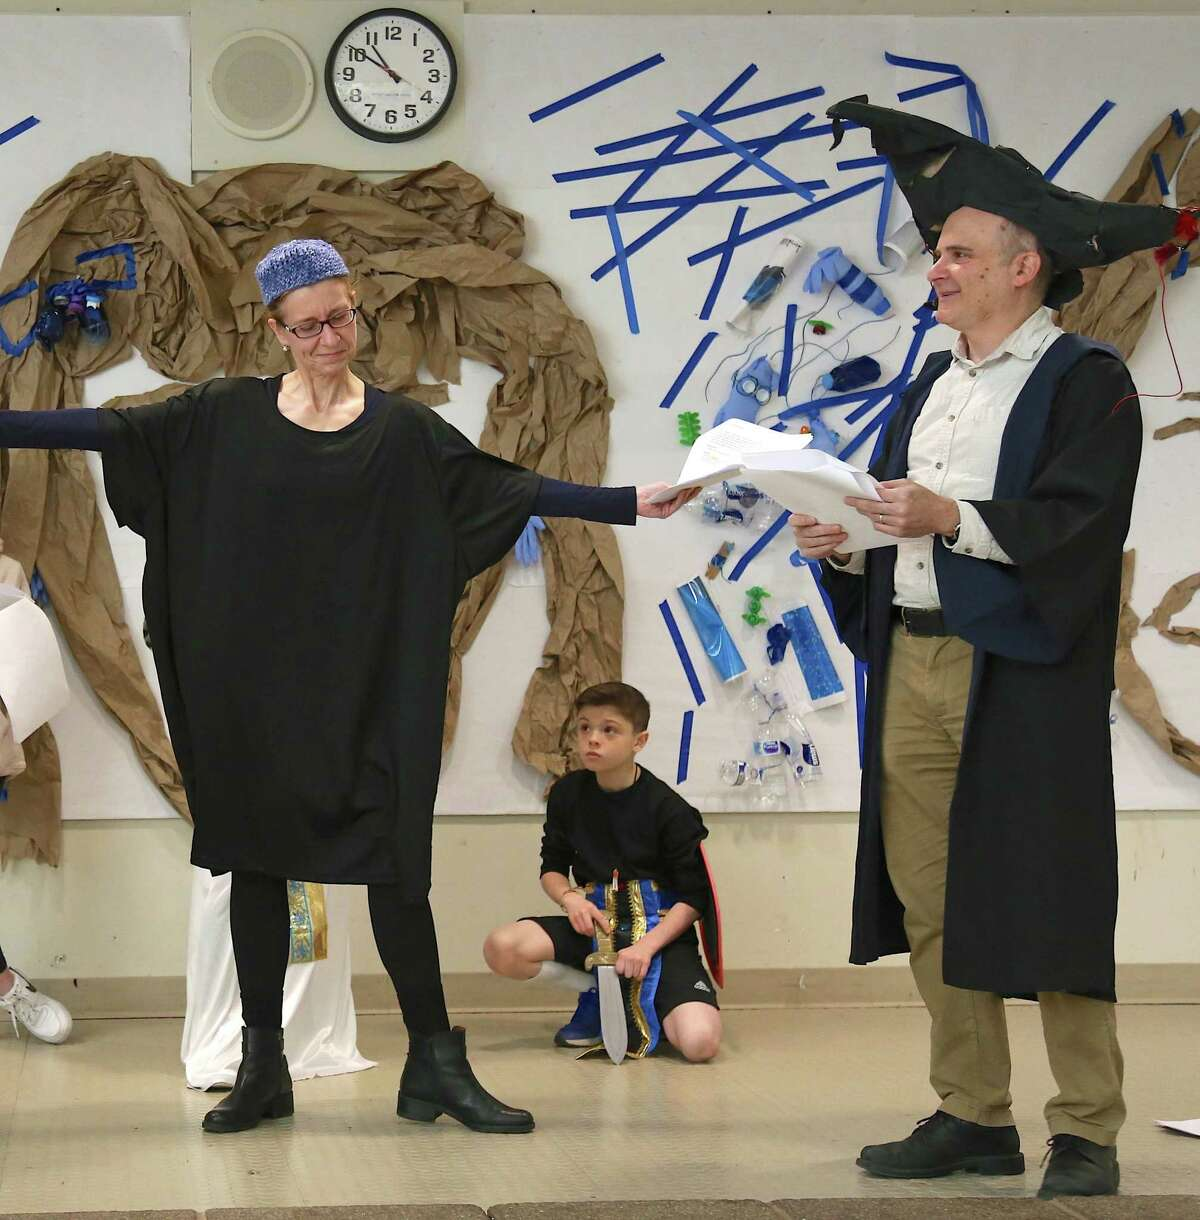 Lore Gruenbaum of Greenwich, at left, brings the traditional play to a close as Mordecai at the Congregation of Humanistic Judaism's Purim celebration at Bedford Middle School on Sunday, March 8, 2020, in Westport, Conn.